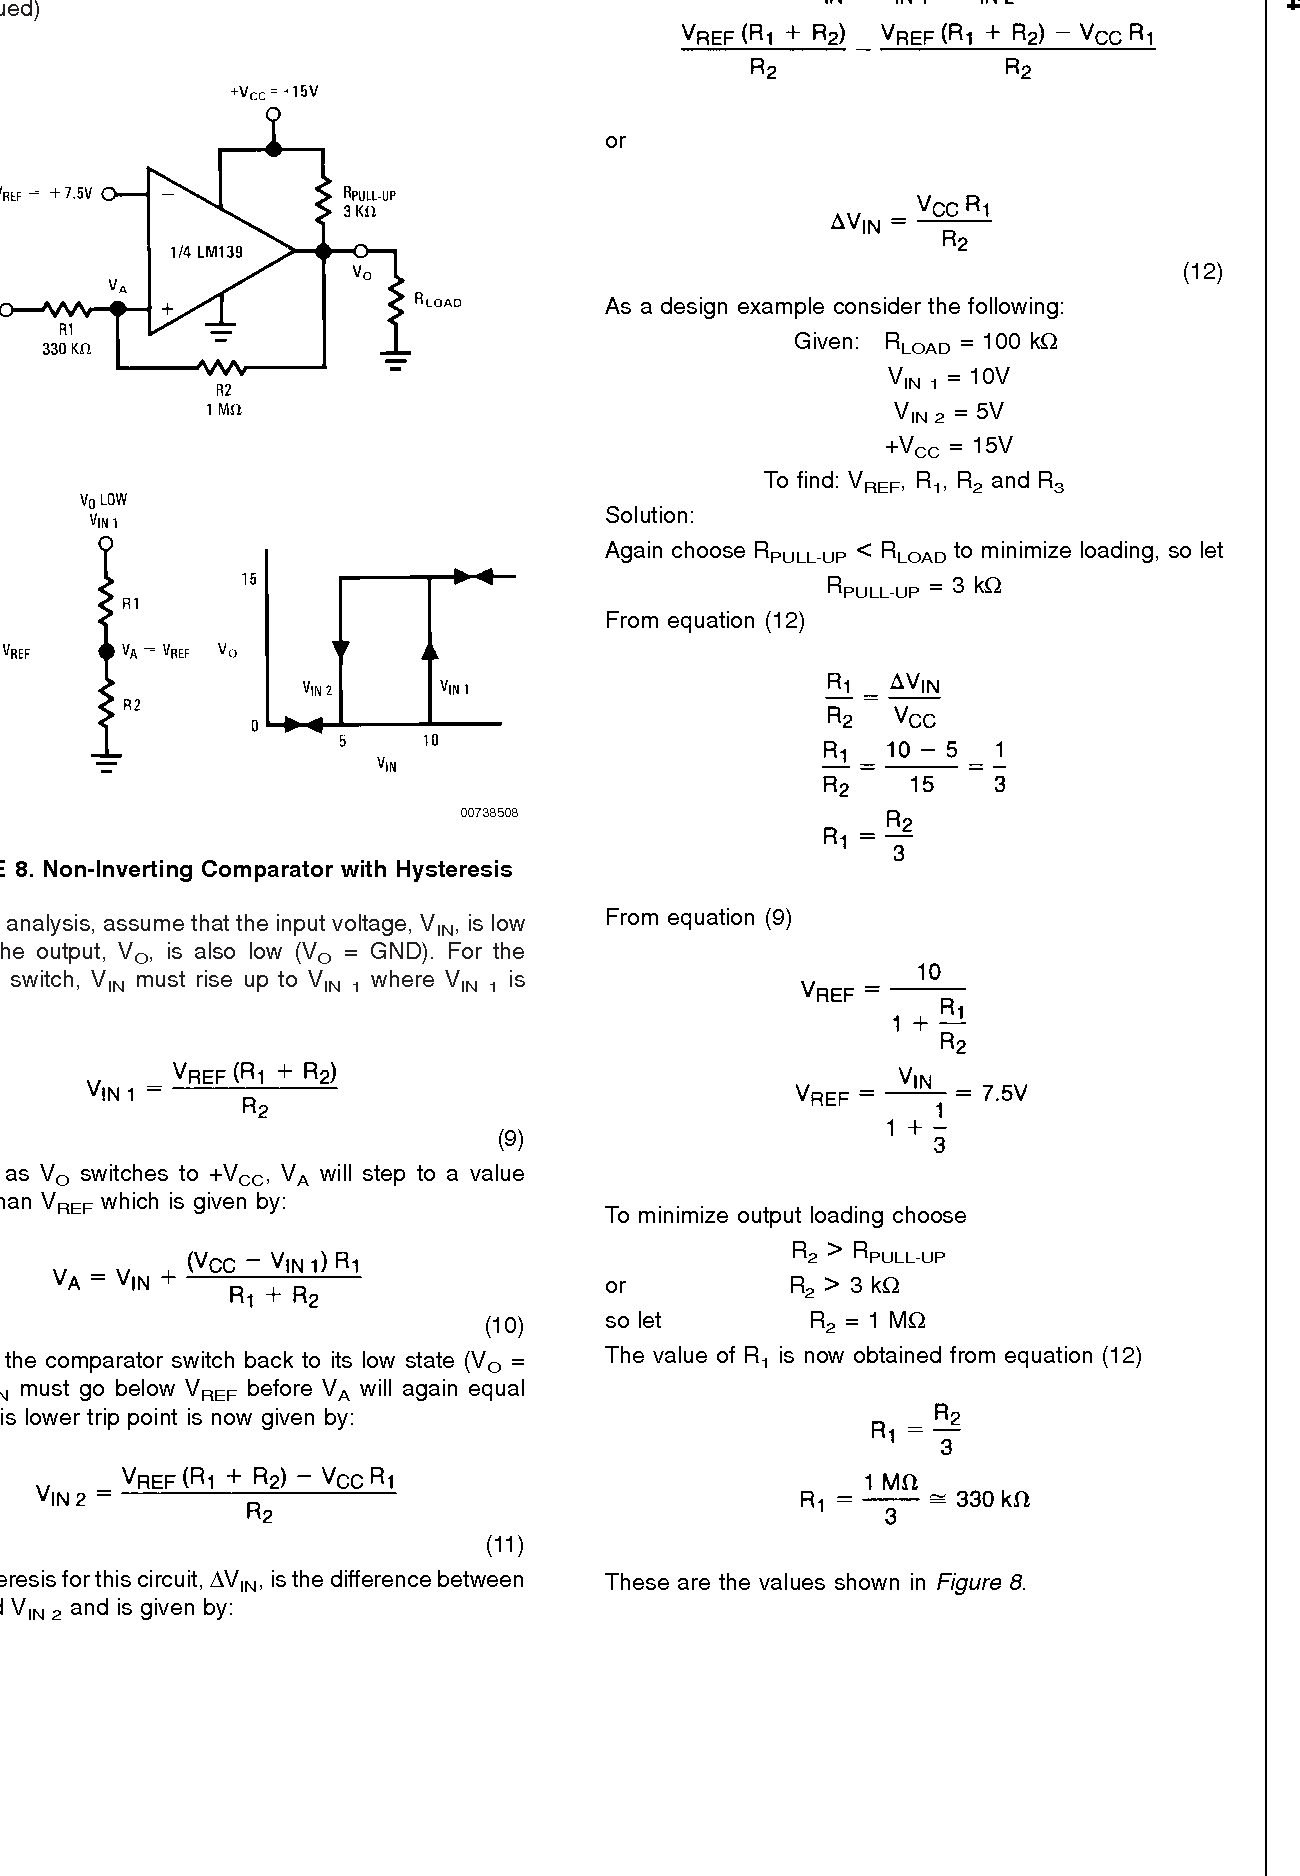 Application Note 74 Lm139 Lm239 Lm339 A Quad Of Independently The Circuit Schematic For Voltage Comparator Non Inverting With Hysteresis